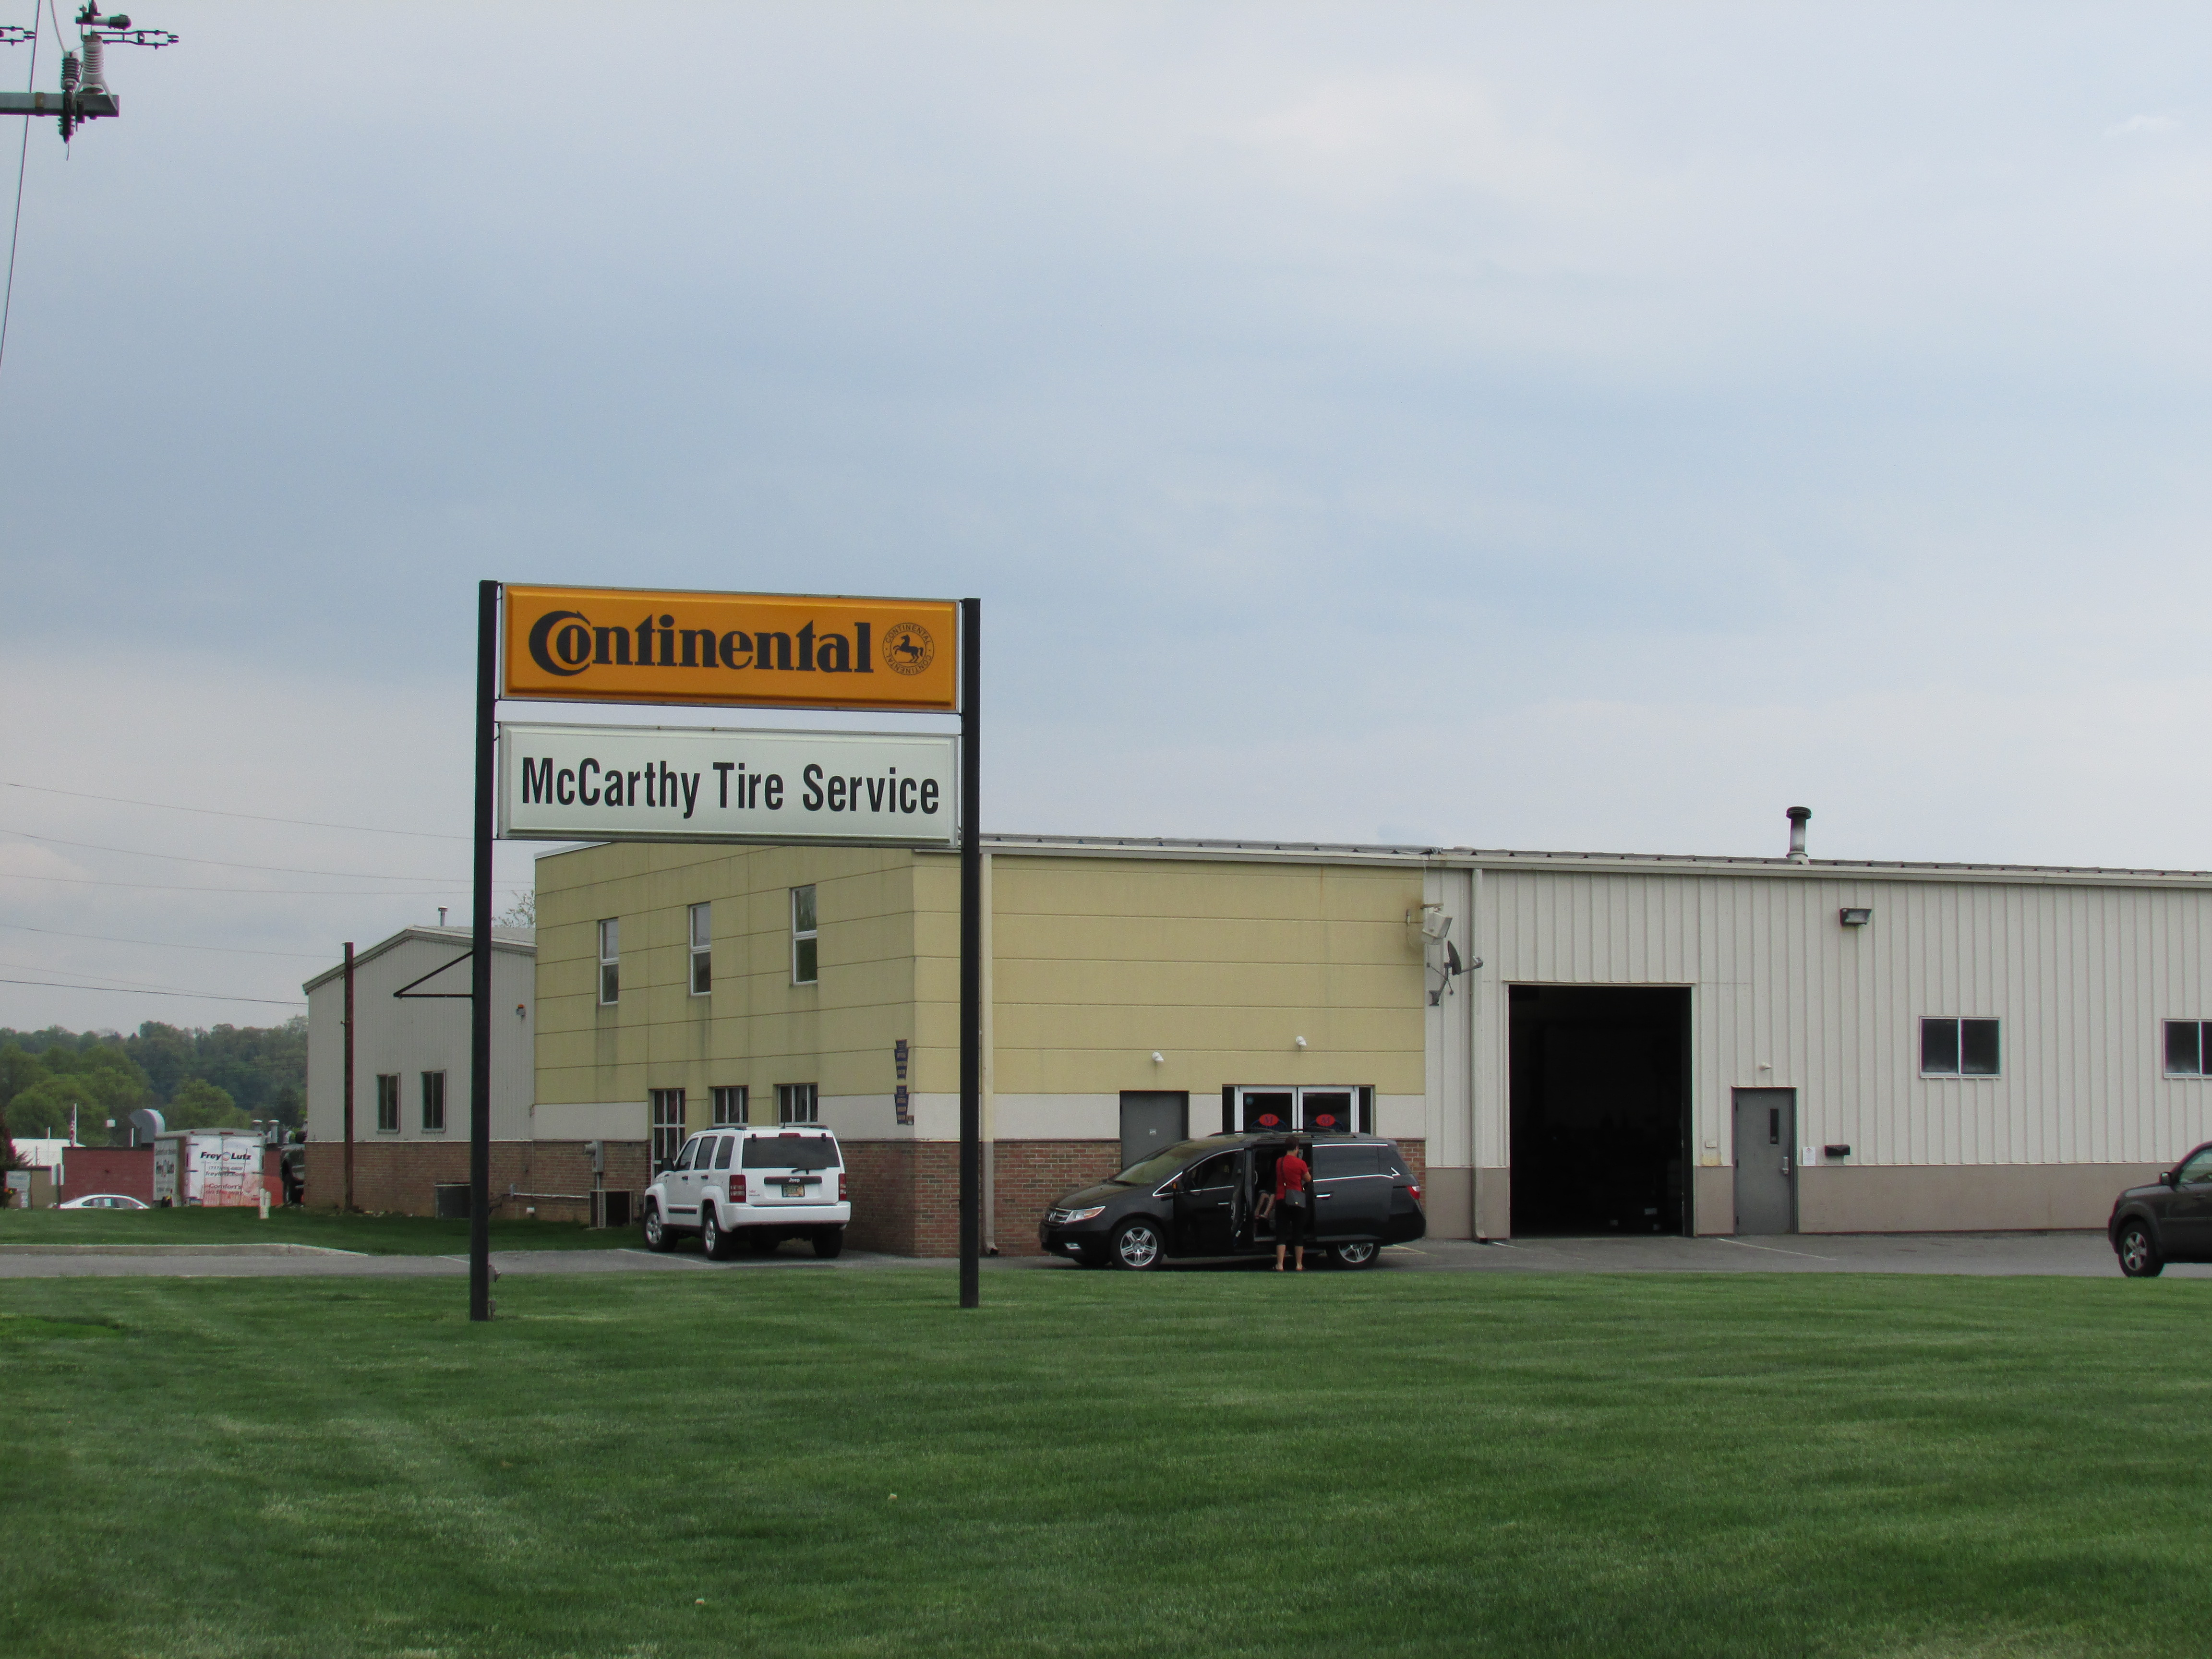 Retread Tires Near Me >> McCarthy Tire Service Coupons near me in Lancaster, PA 17601 | 8coupons